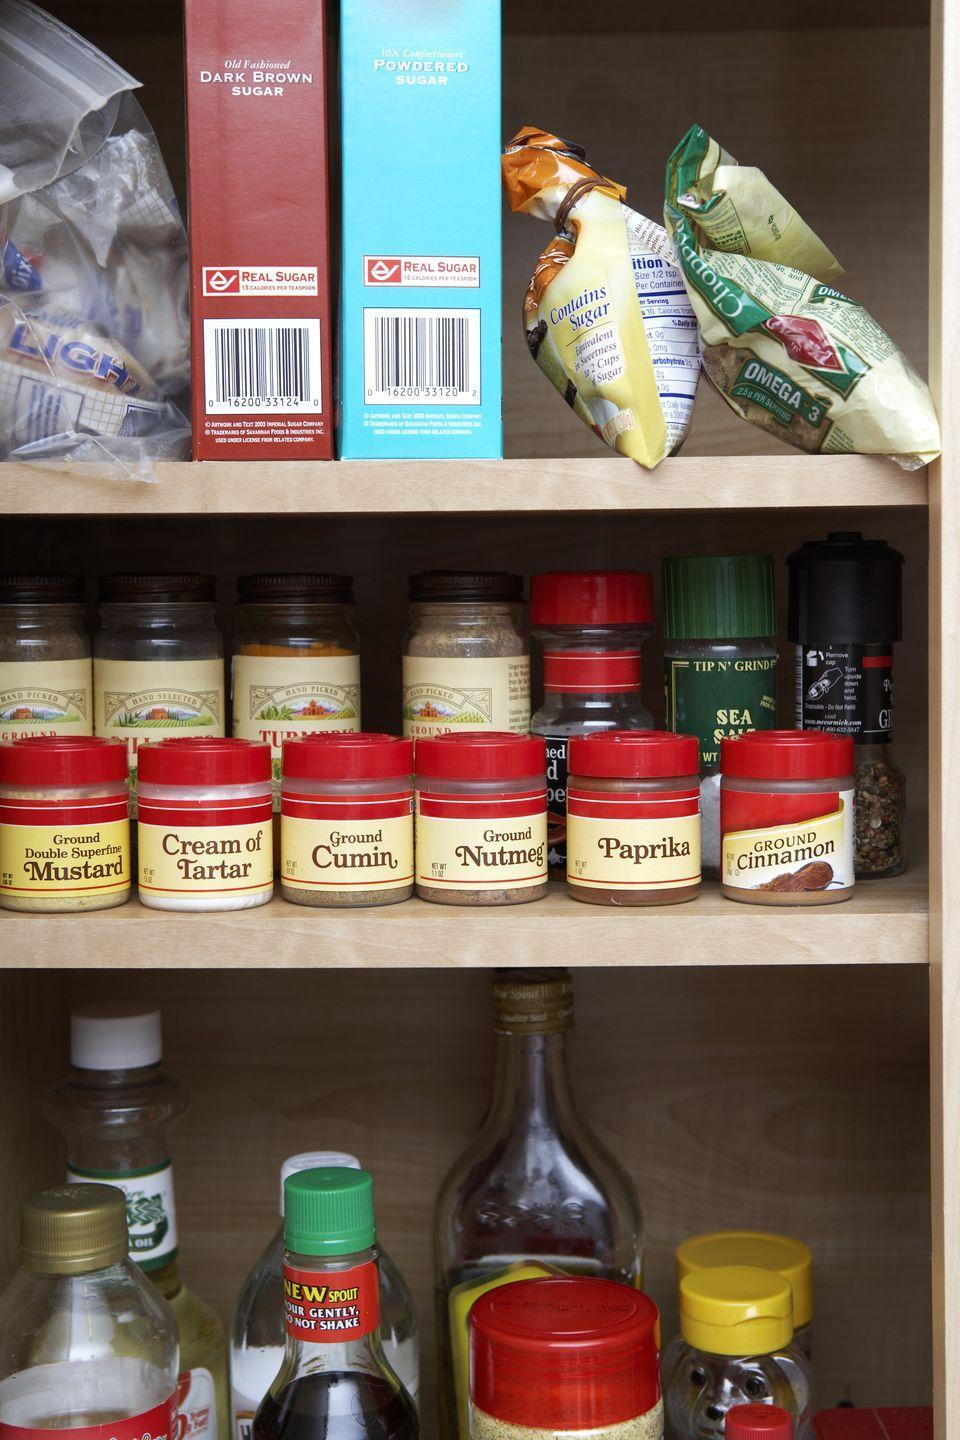 <p>There are plenty of pantry staples that last for years on end, but others—like canned goods and spices—do need to be replaced periodically. Do a pass through your pantry, and toss anything that's expired. Make a mental note to use anything with looming expiration dates. </p>